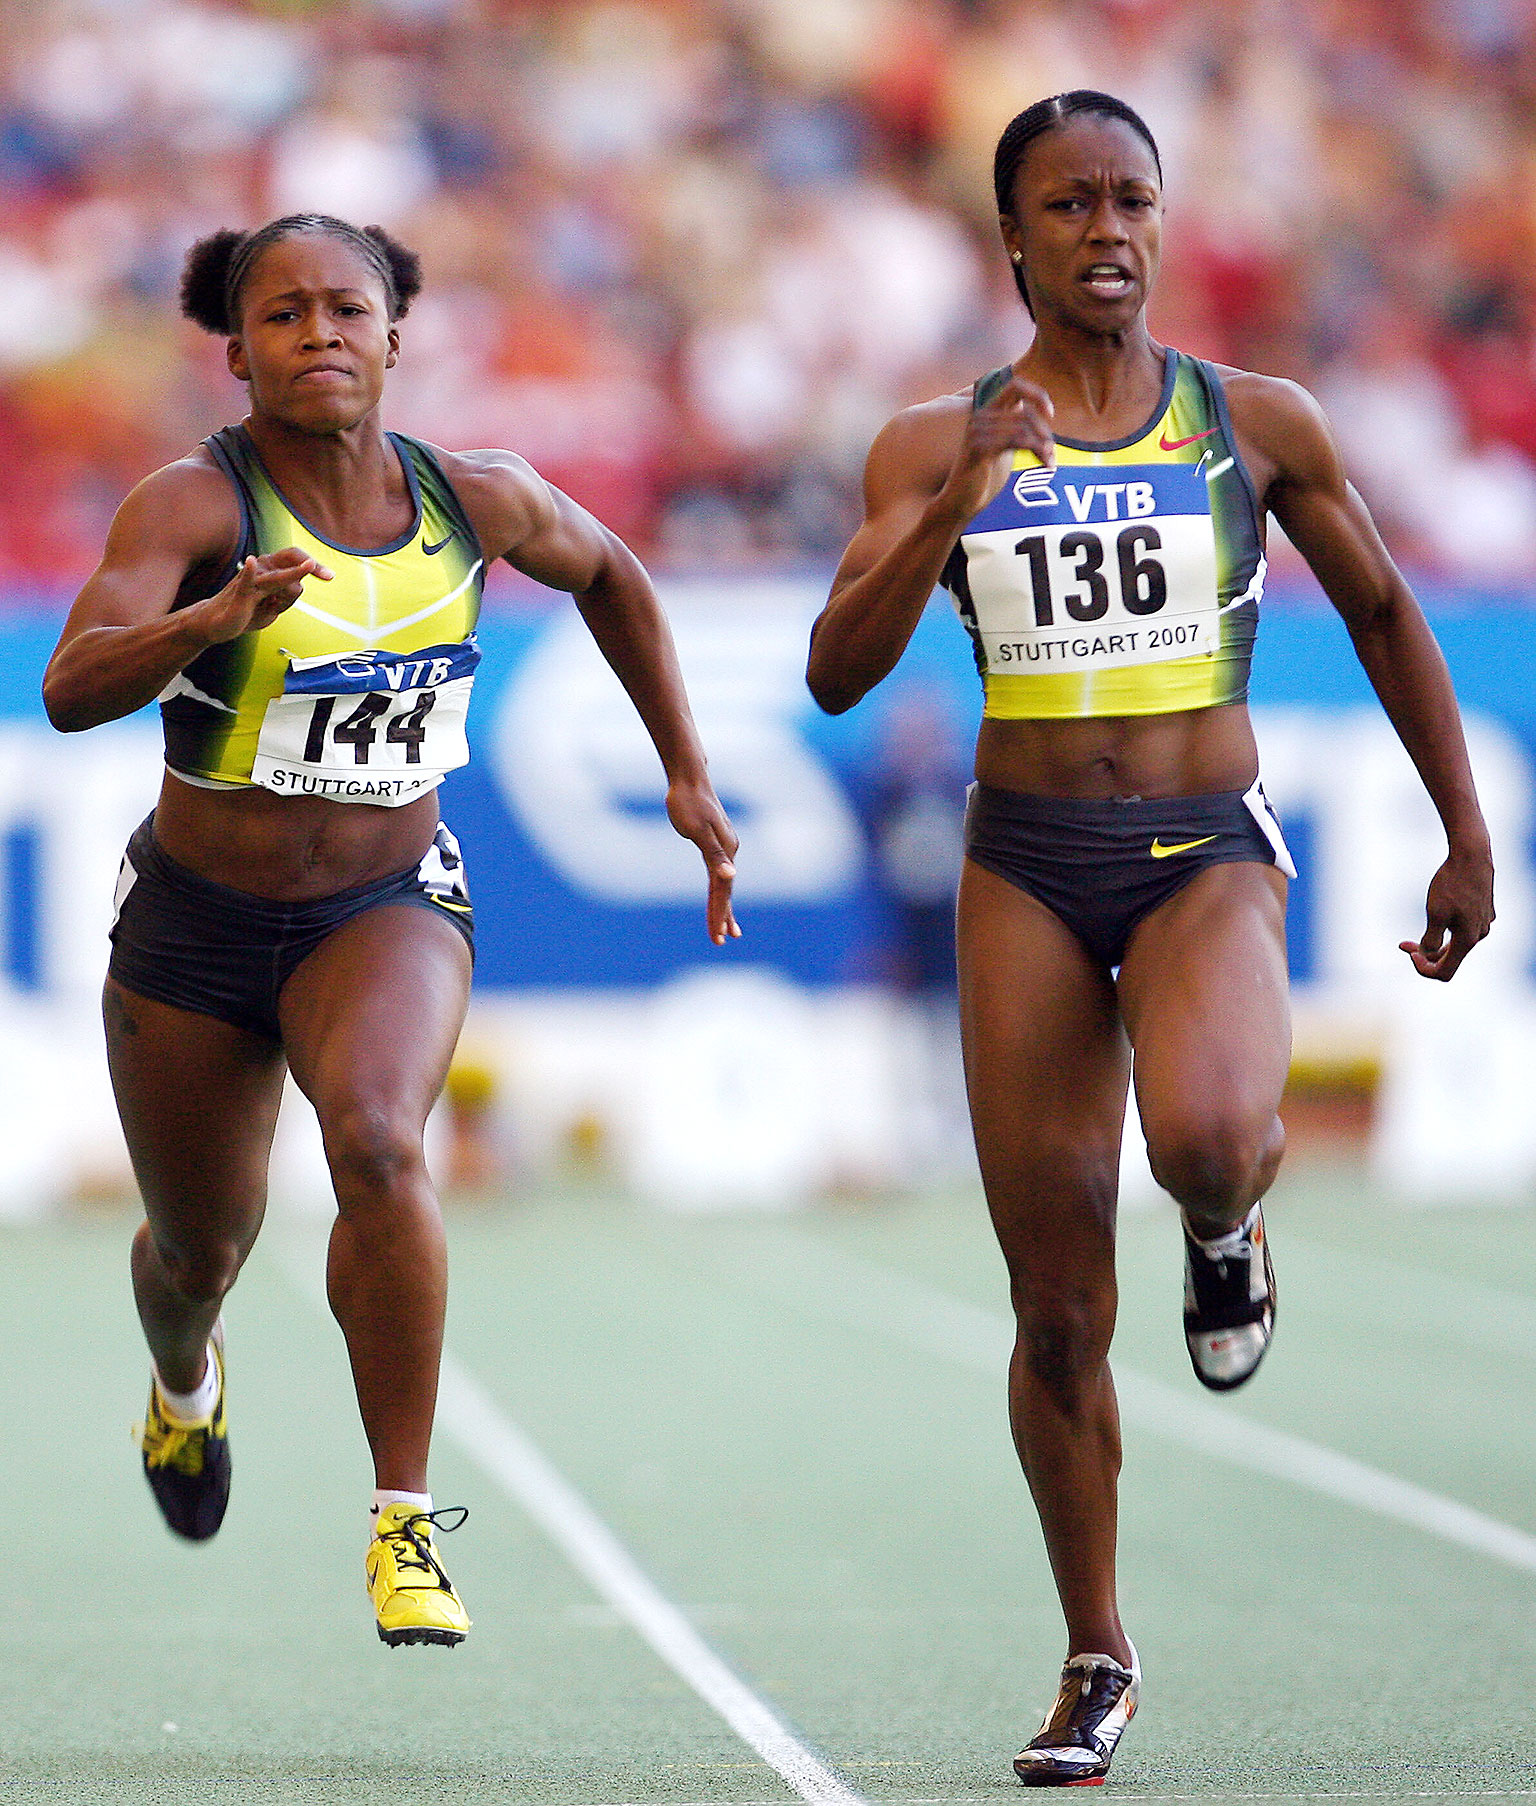 Carmelita Jeter, right, has made up for lost time in her career after being plagued by injuries from 2003 to 2005.